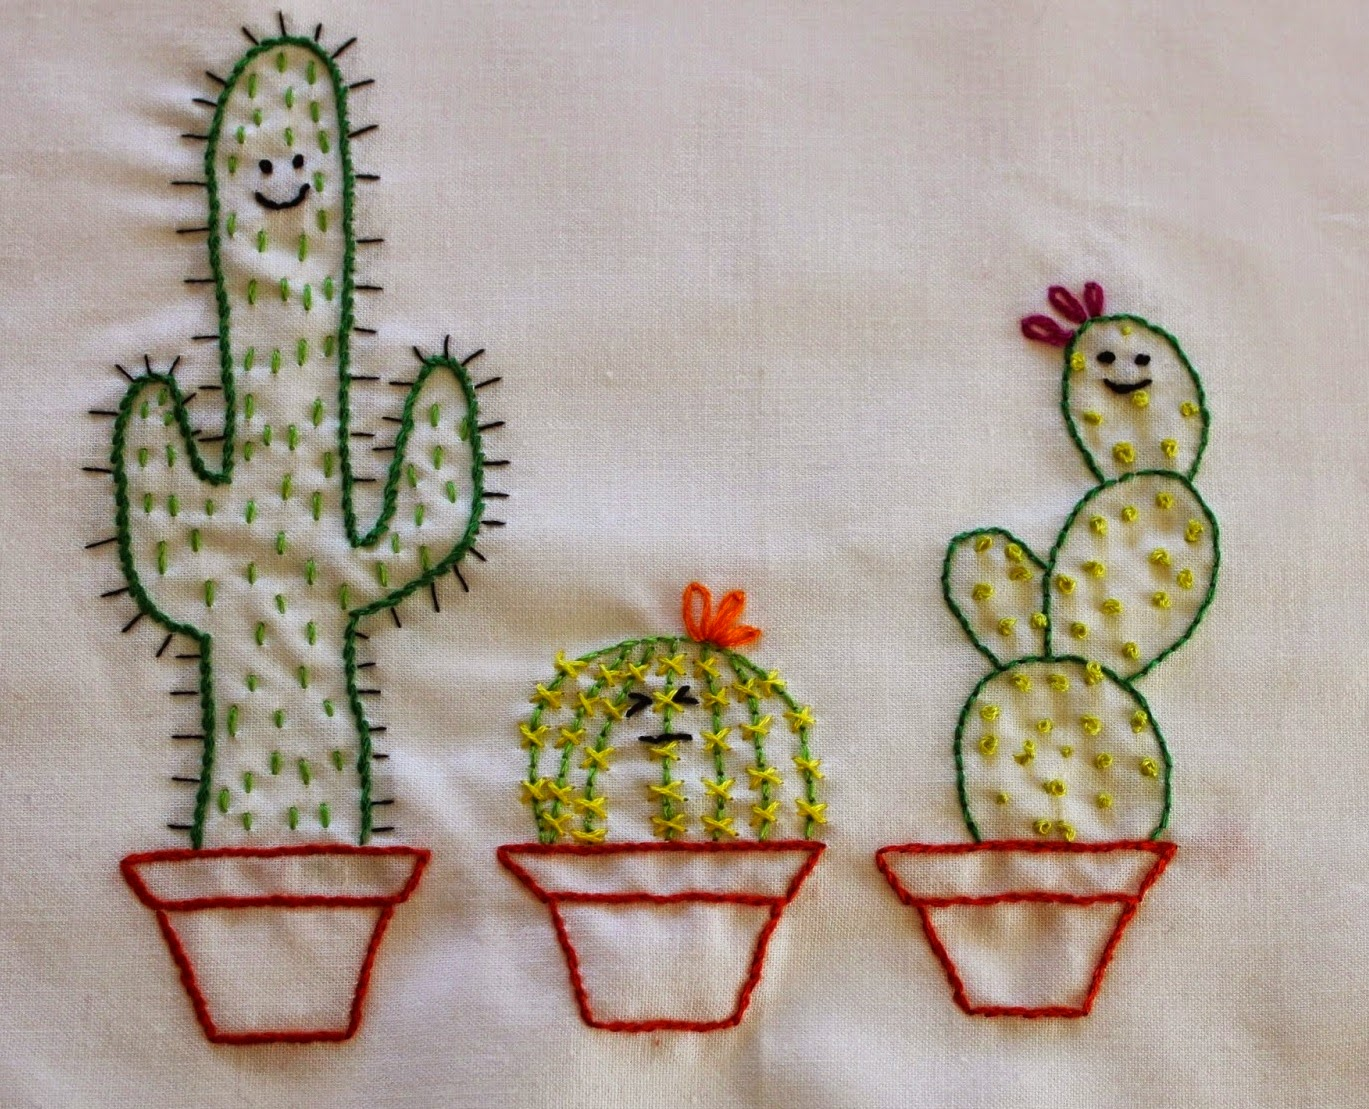 Sewpsyched cacti embroidery patterns